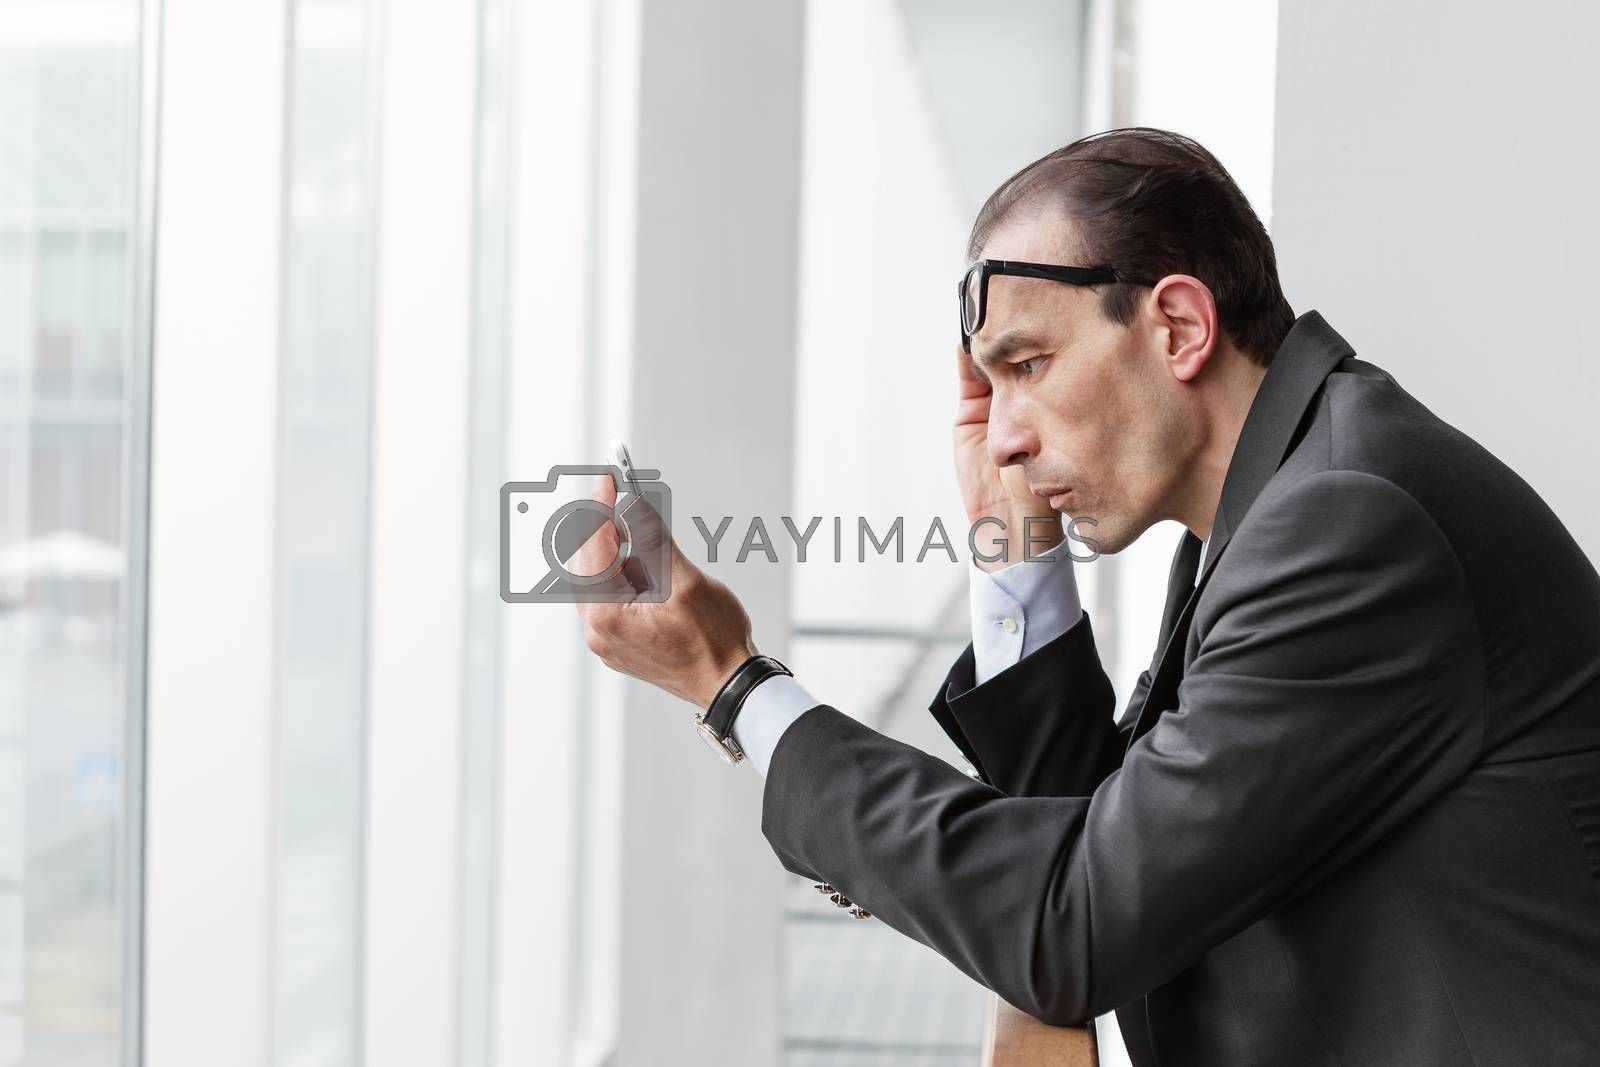 Poor eyesight Businessman trying to watch his phone display